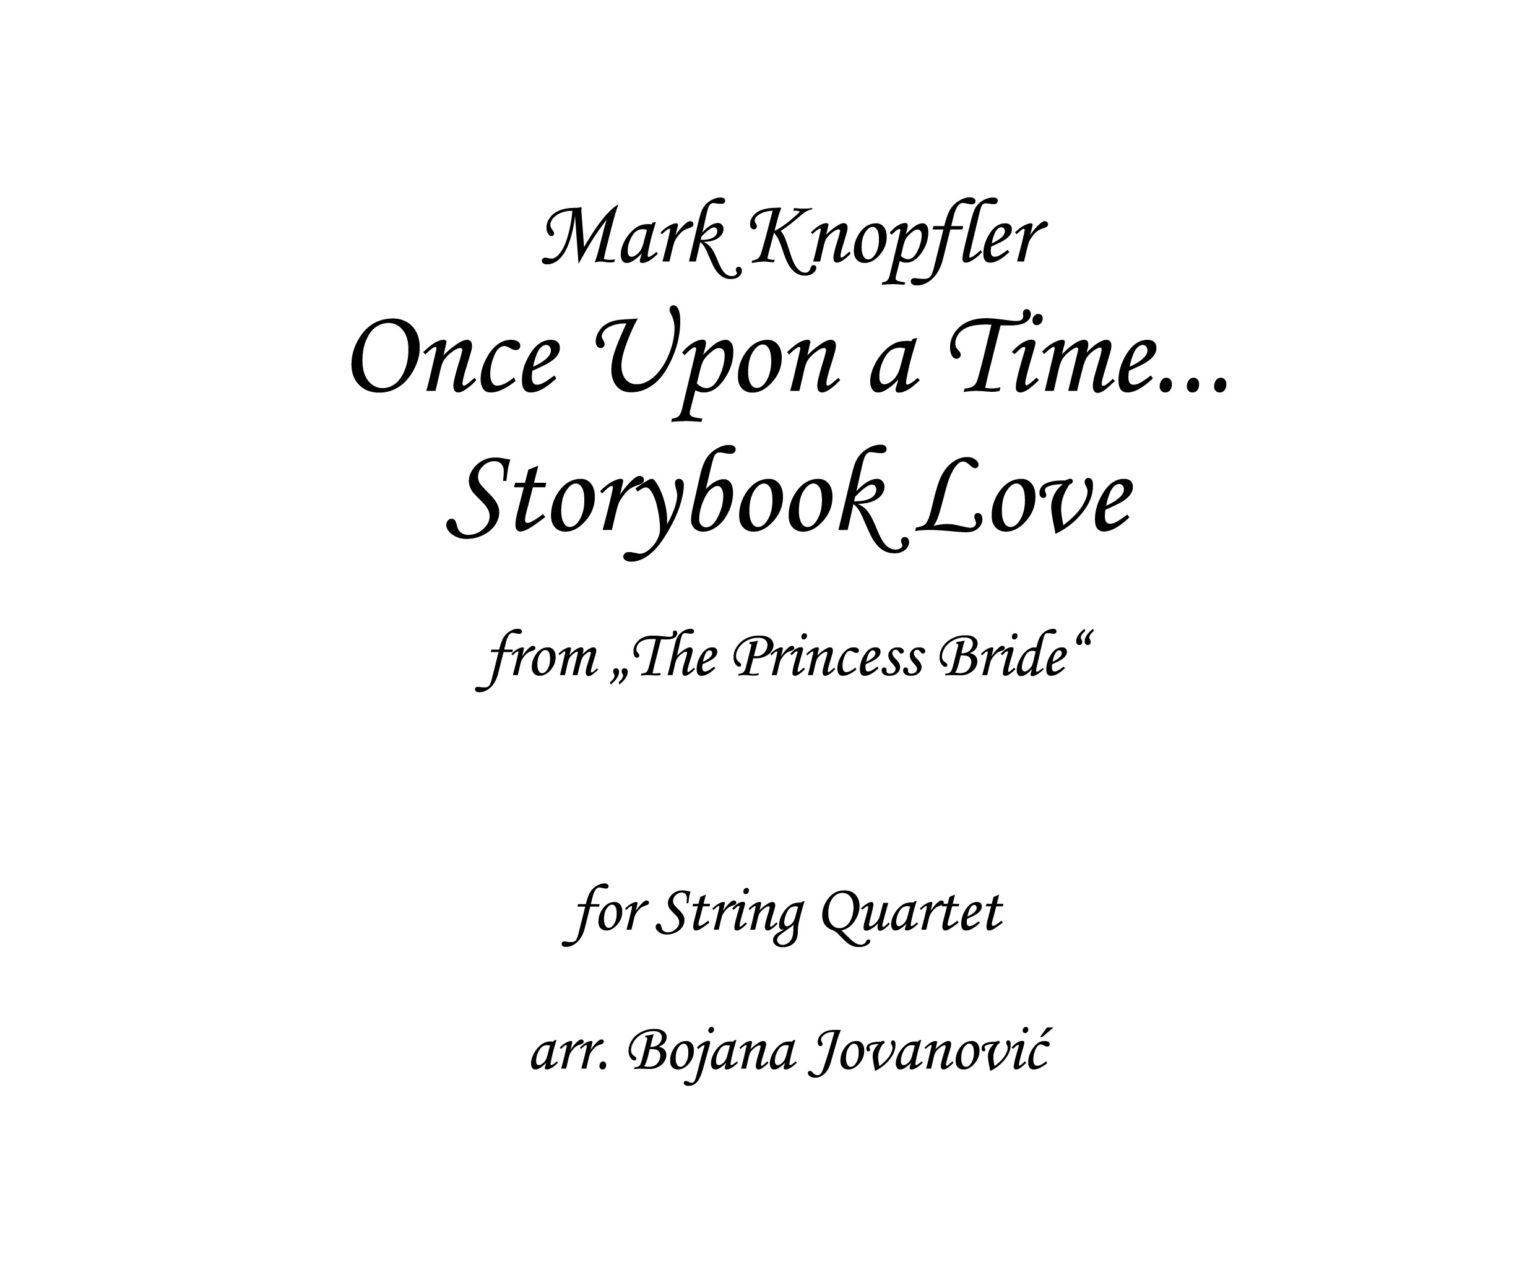 Once Upon a Time…Storybook Love (Mark Knopfler)